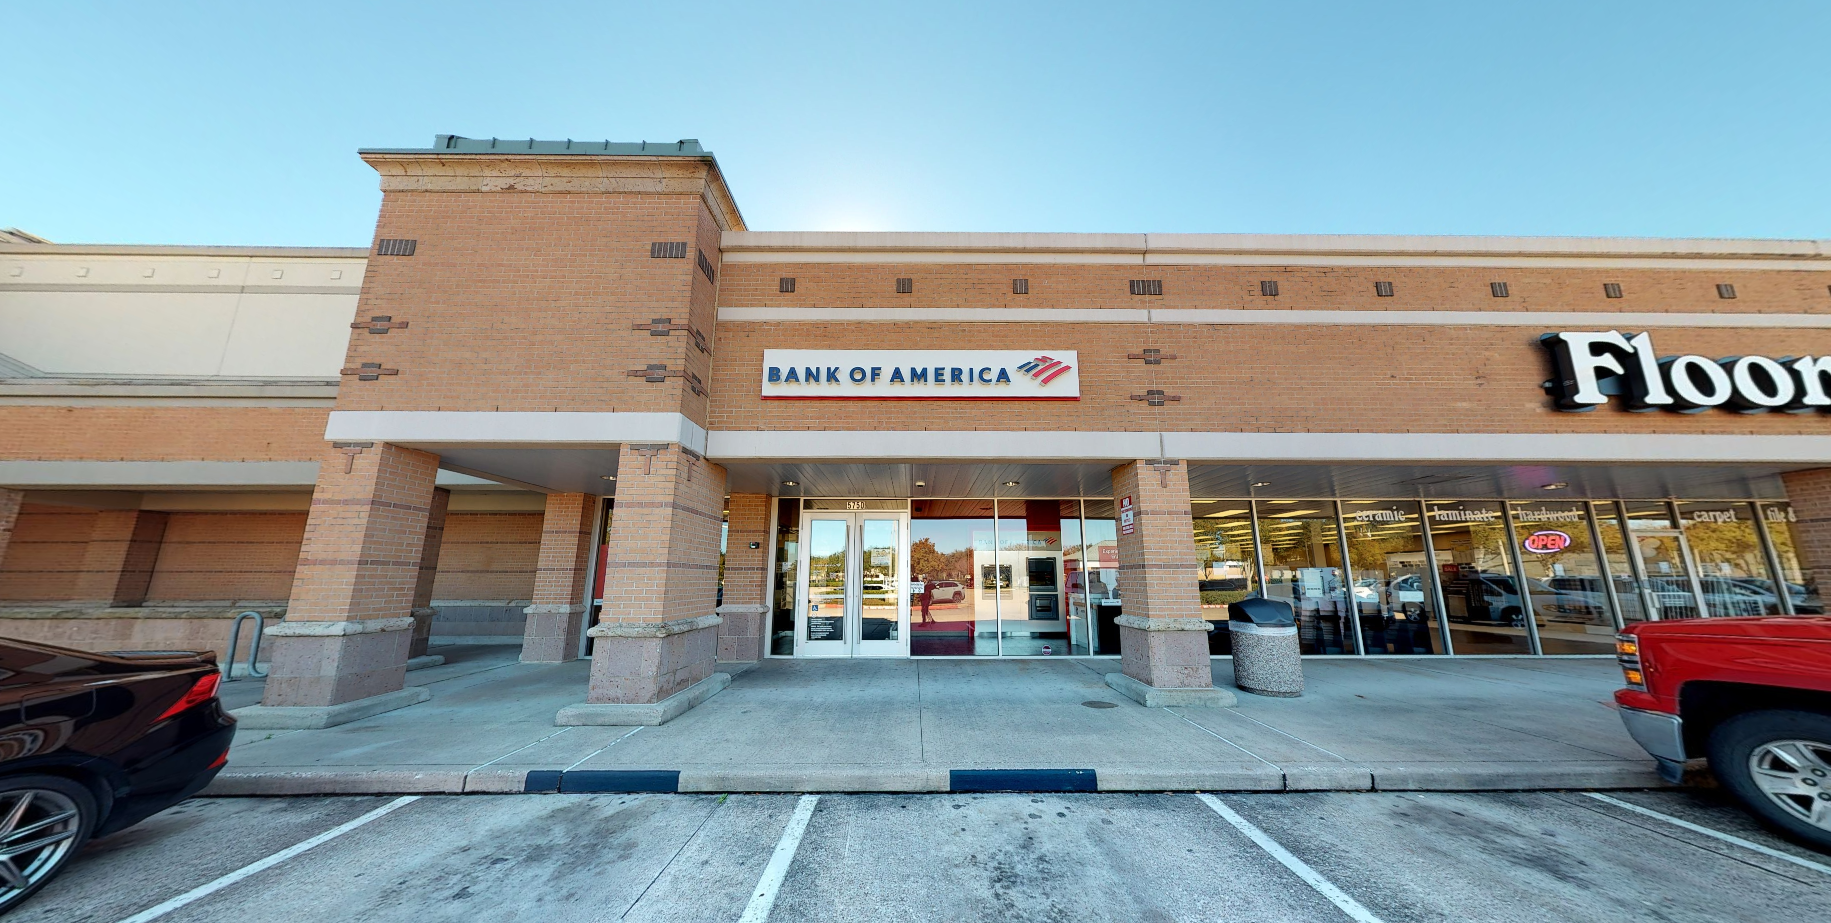 Bank of America financial center with walk-up ATM   5750 New Territory Blvd, Sugar Land, TX 77479